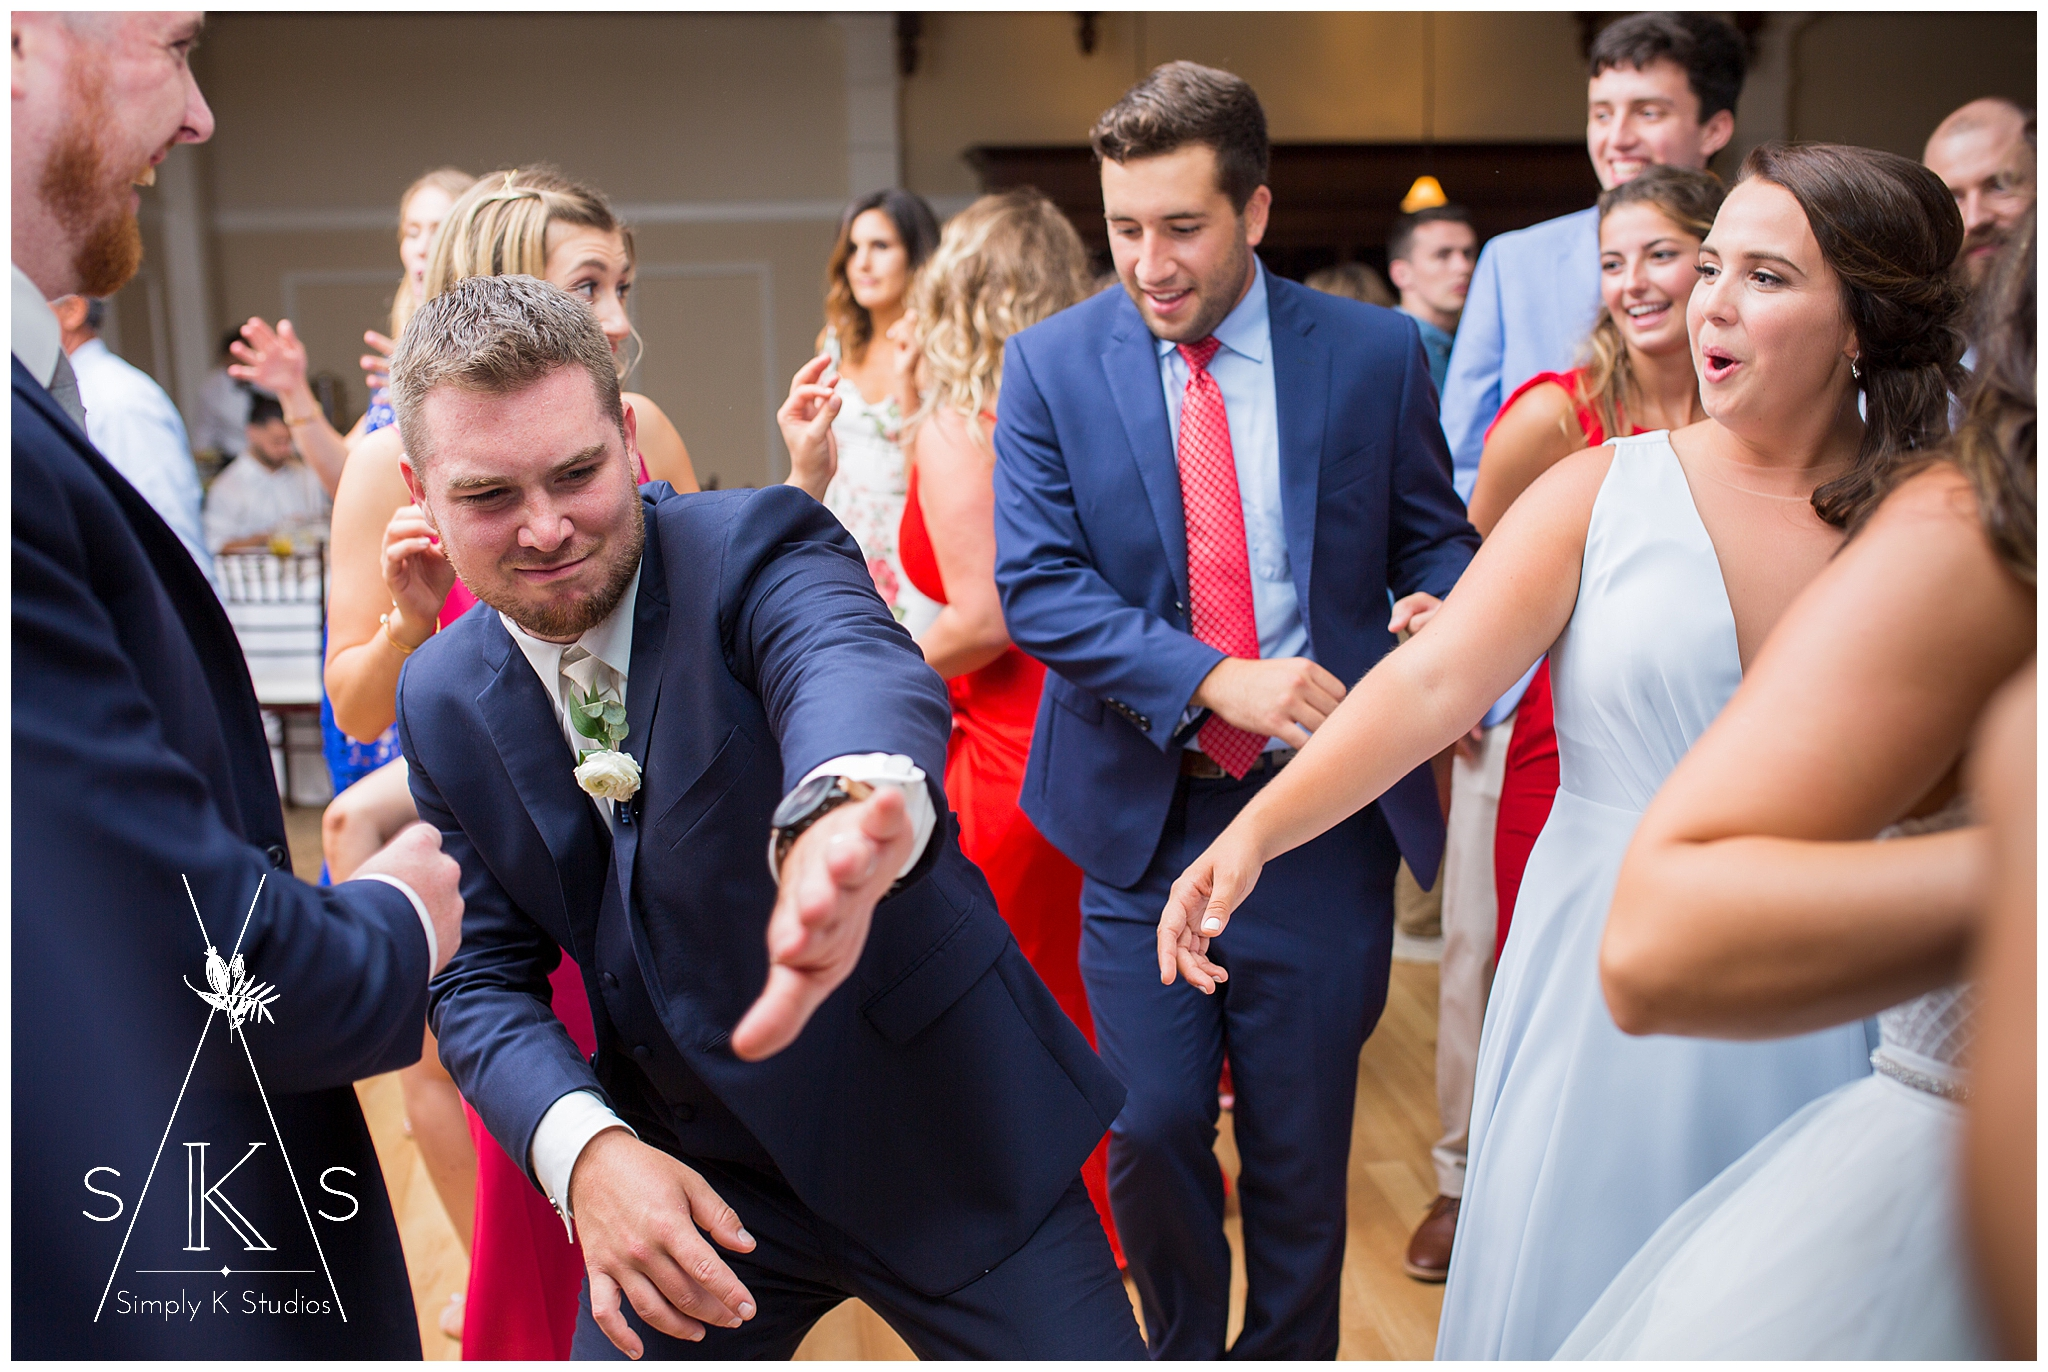 120 Groom Dancing at a Wedding.jpg